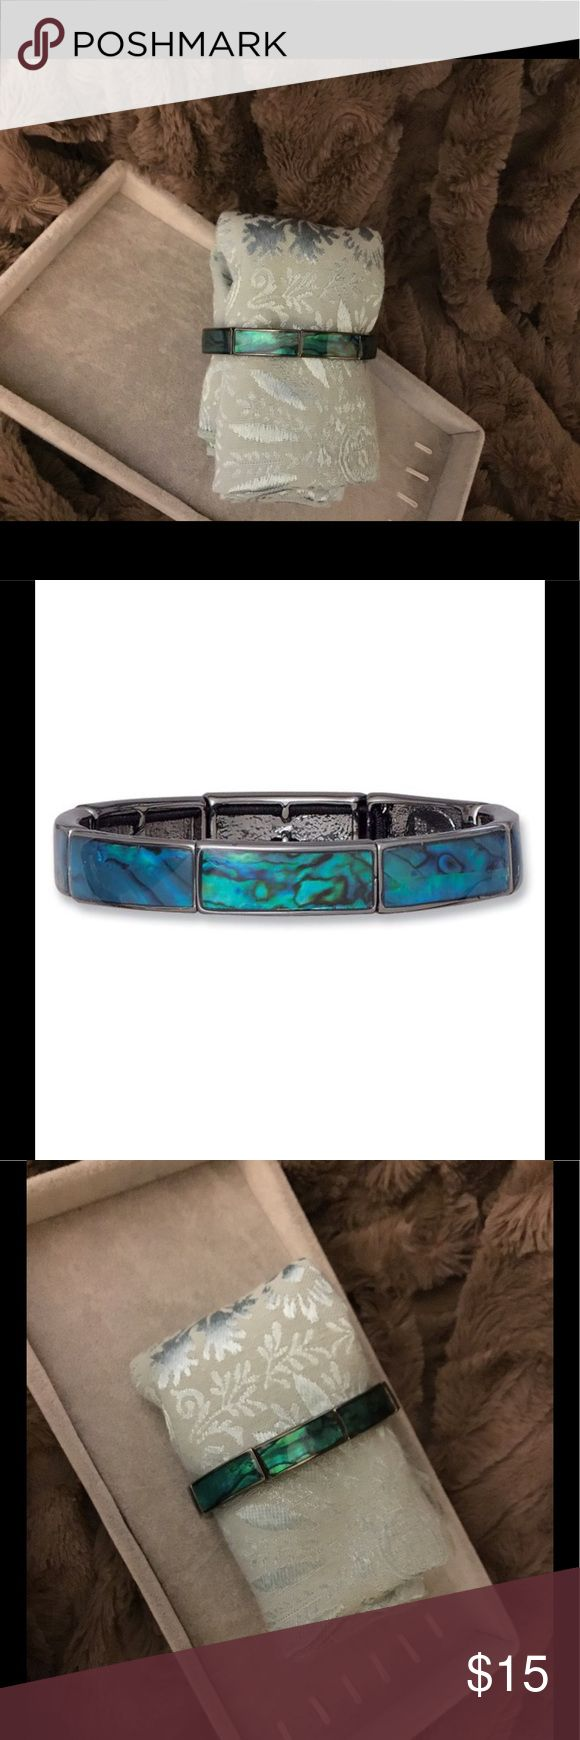 New Lia Sophia Abalone Stretch Bracelet Black Hematite Stretch Bracelet with Beautiful Abalone Inlay Lia Sophia Jewelry Bracelets